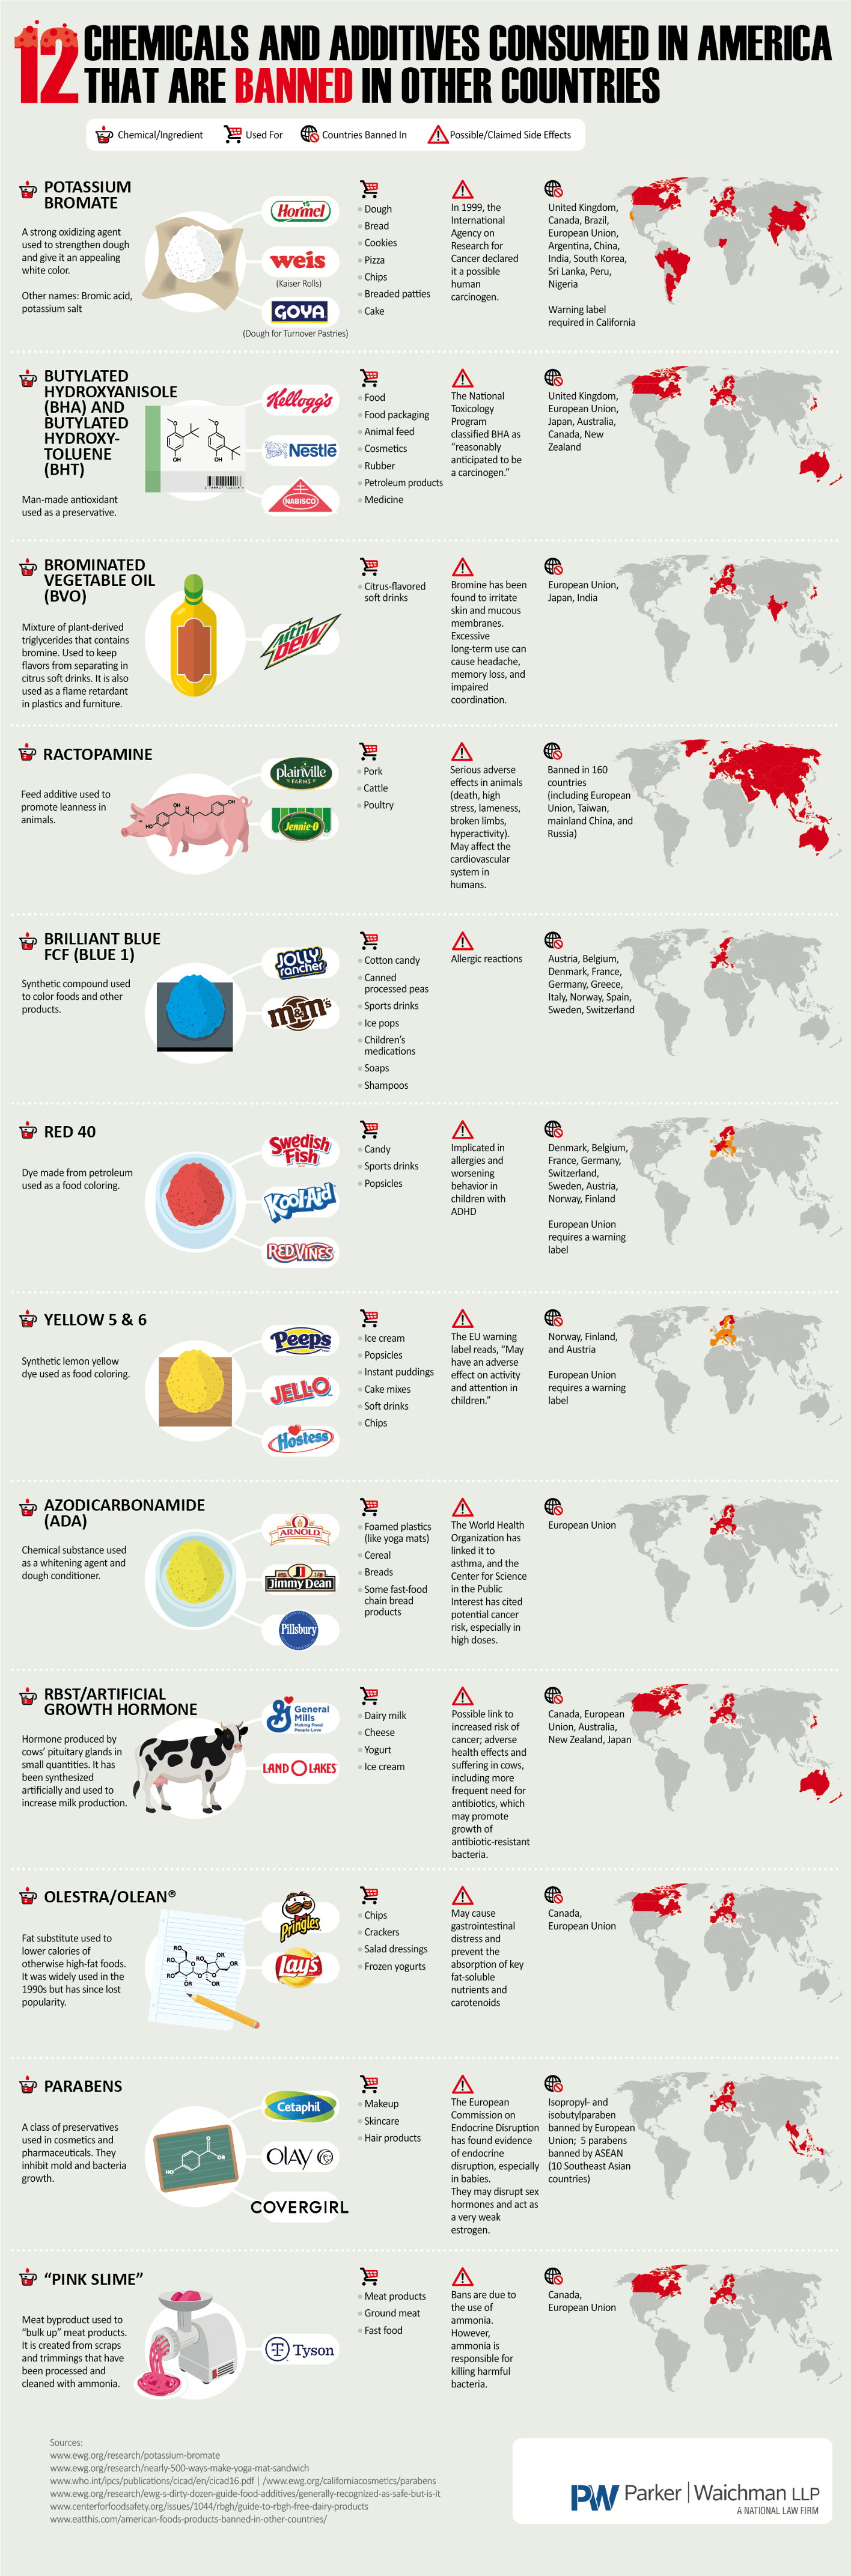 12 Chemicals Amp Additives Consumed By The Us That Is Banned